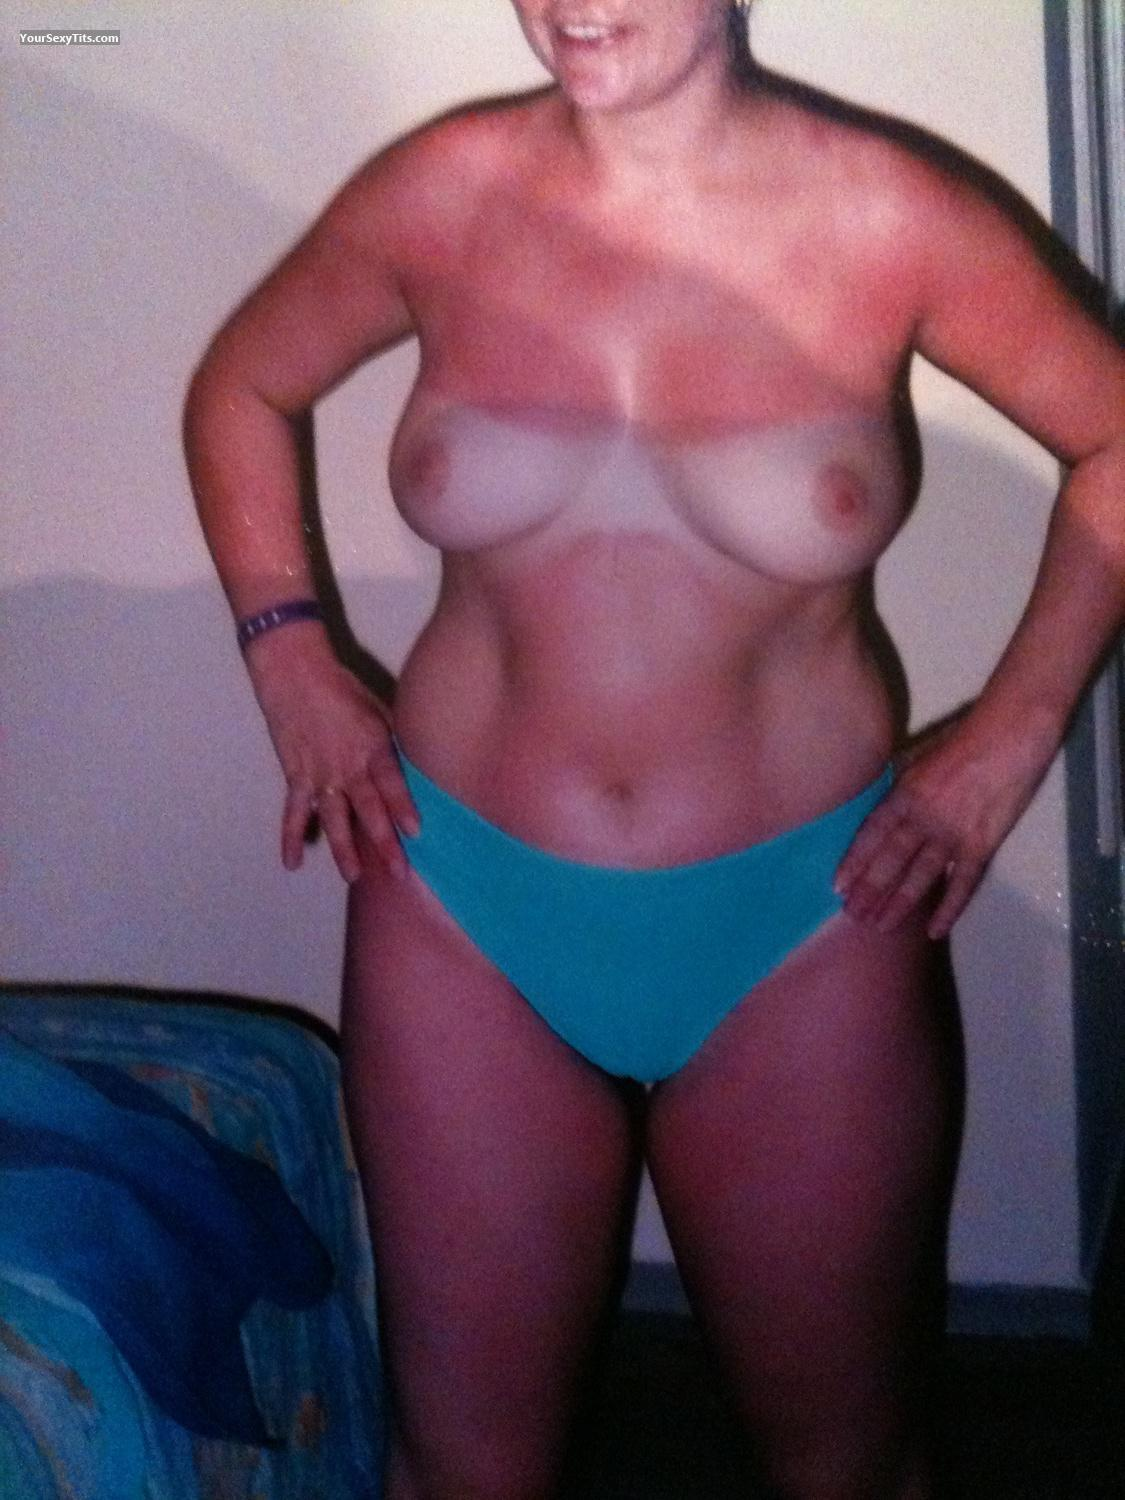 Tit Flash: Medium Tits By IPhone - 36 Ff. Tan Lined from United Kingdom